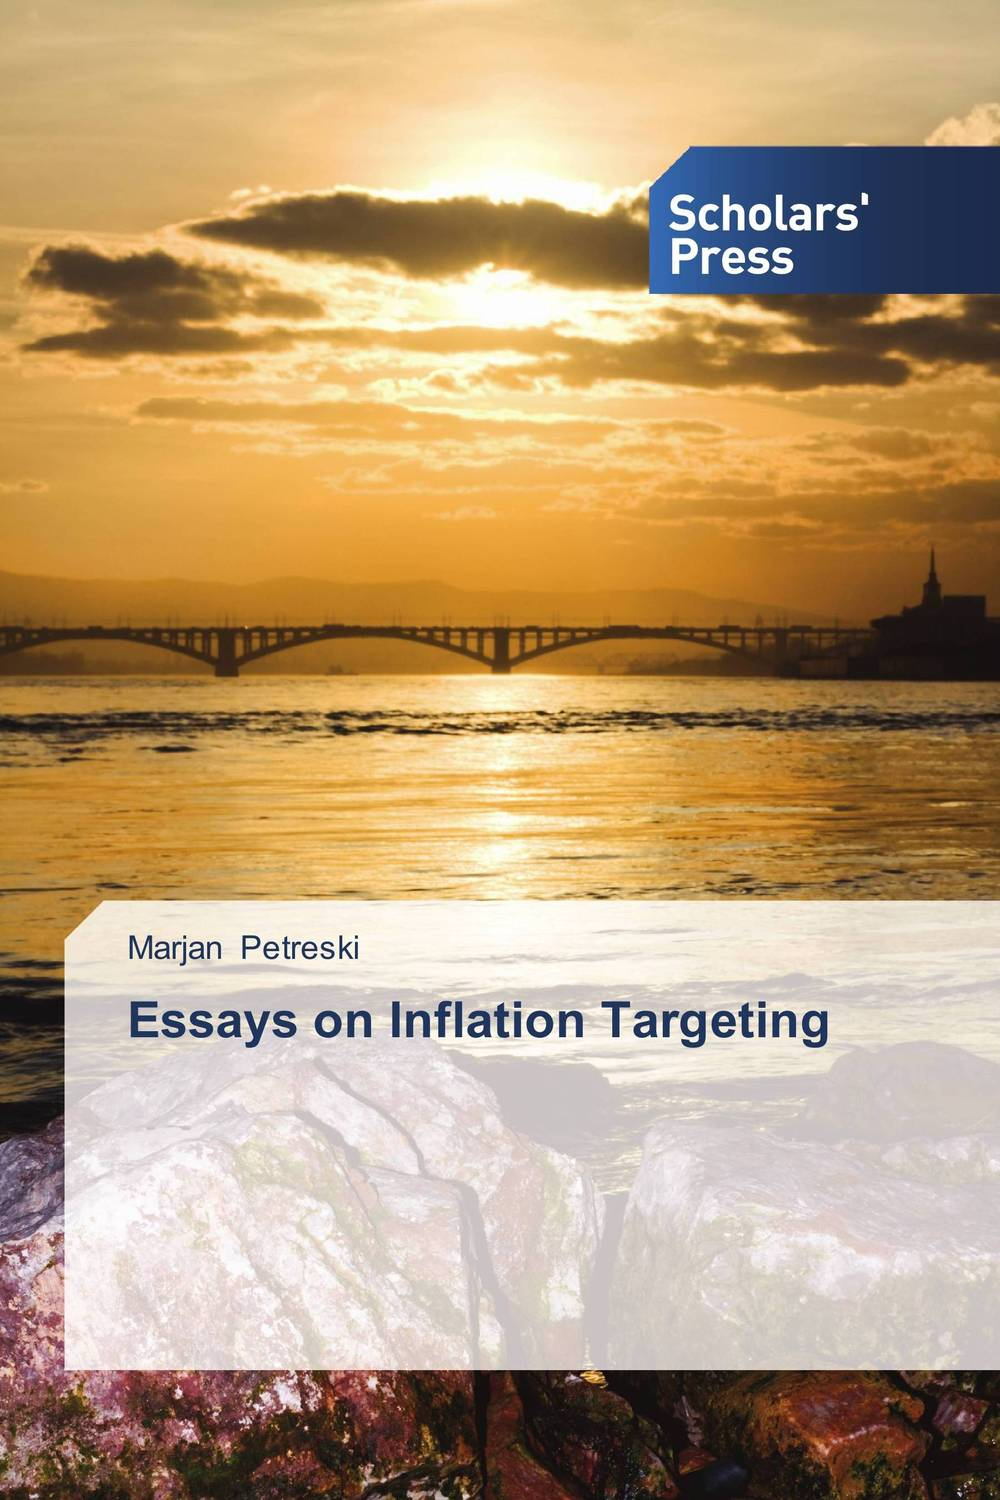 Essays on Inflation Targeting essays before a sonata – the majority